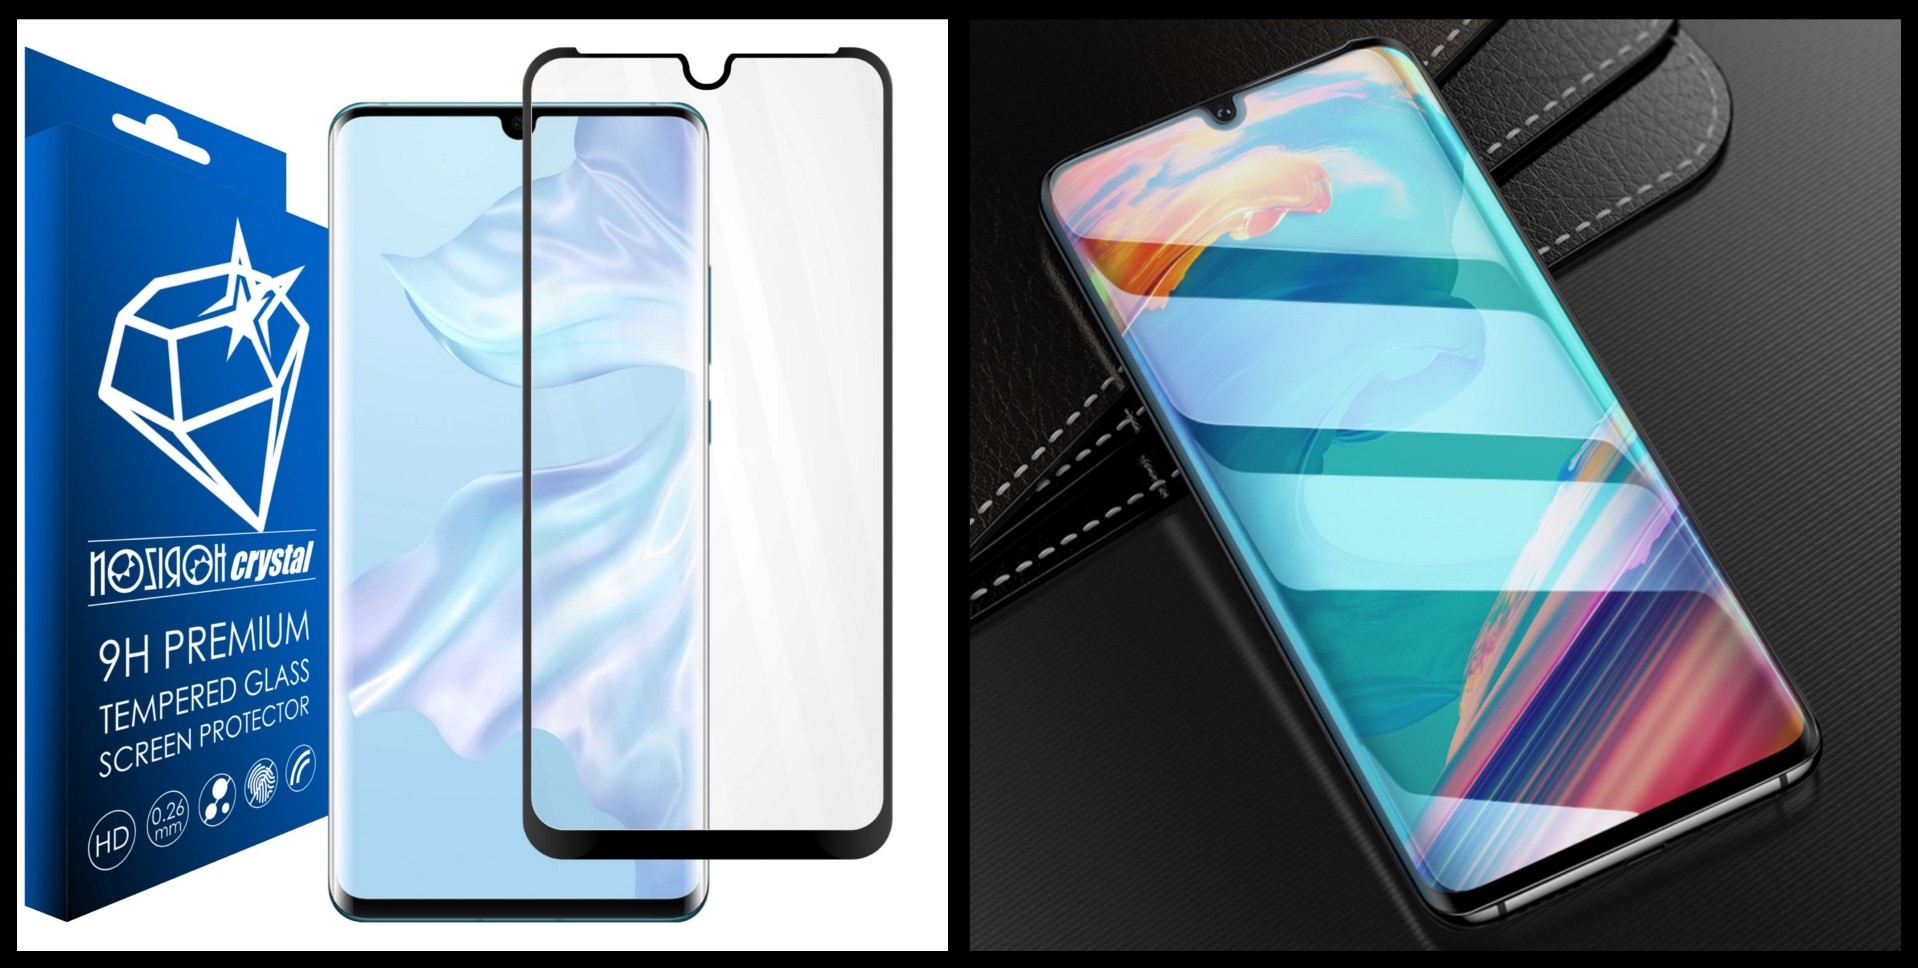 noziroh crystal huawei p30 pro tempered glass 9h 3d shockproof scratchproof black